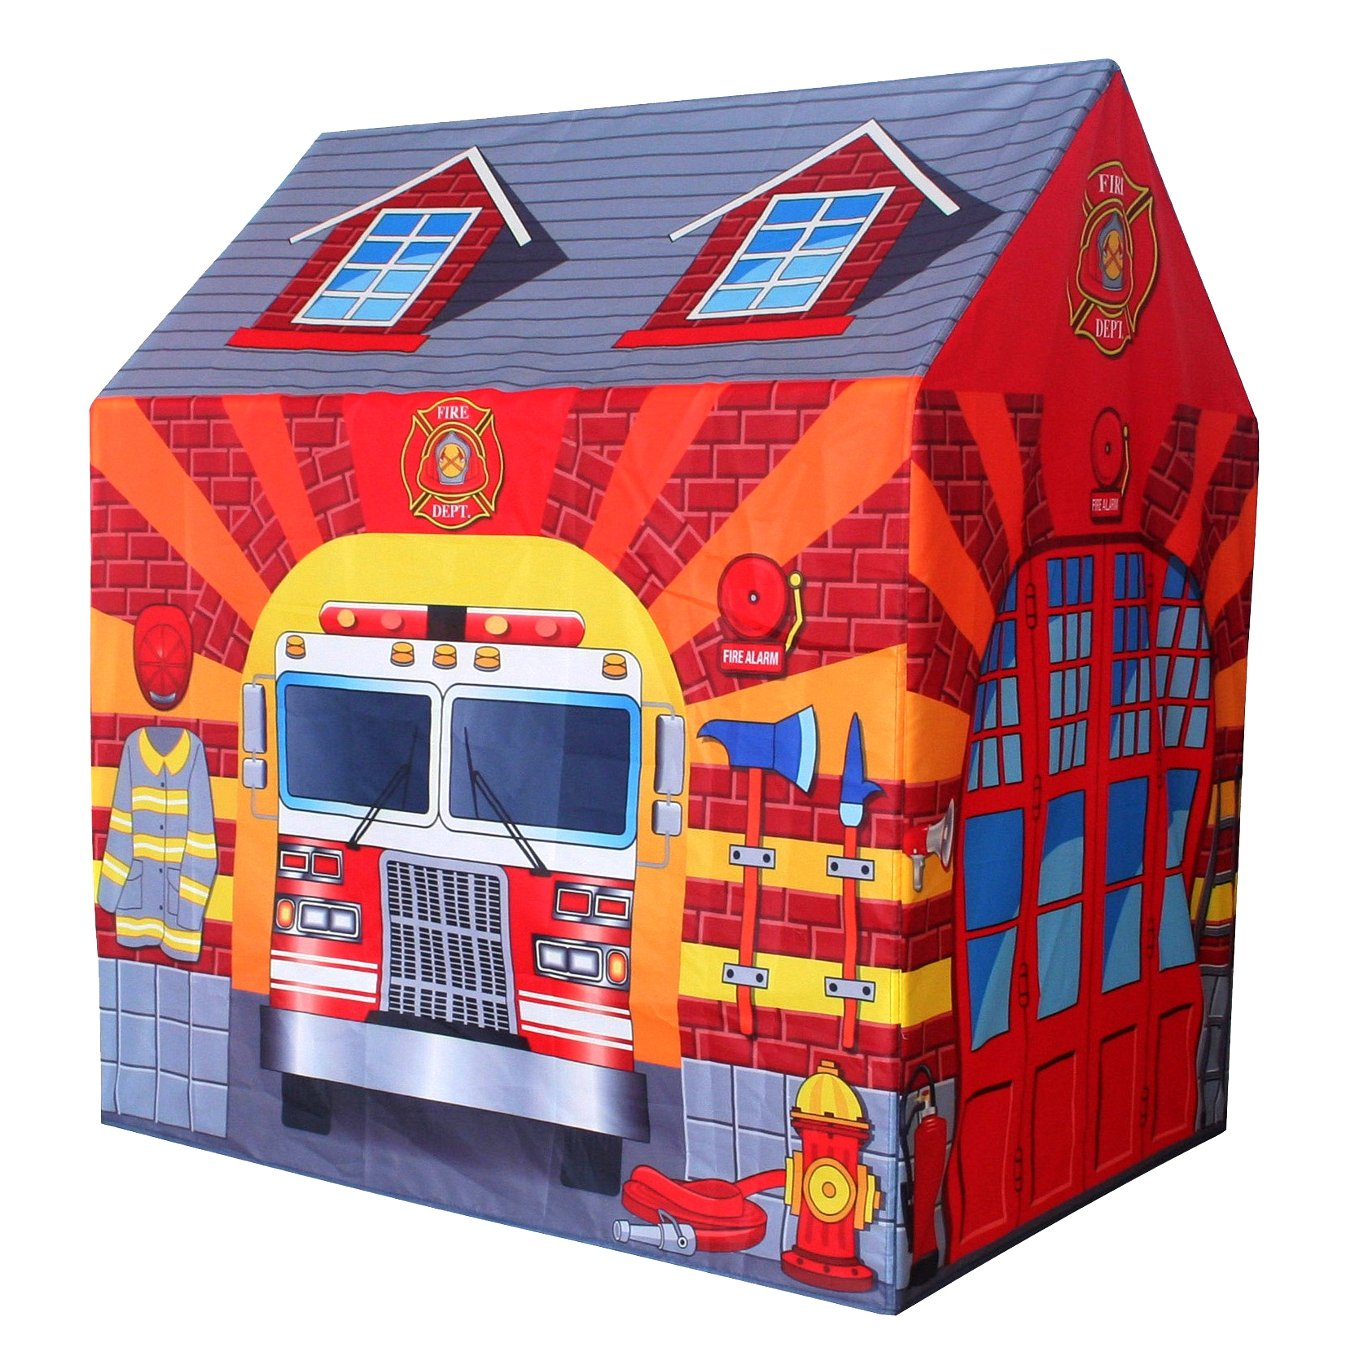 Amazon.com POCO DIVO Fire Station Play Tent Kids Pretend Playhouse Toys u0026 Games  sc 1 st  Amazon.com & Amazon.com: POCO DIVO Fire Station Play Tent Kids Pretend ...